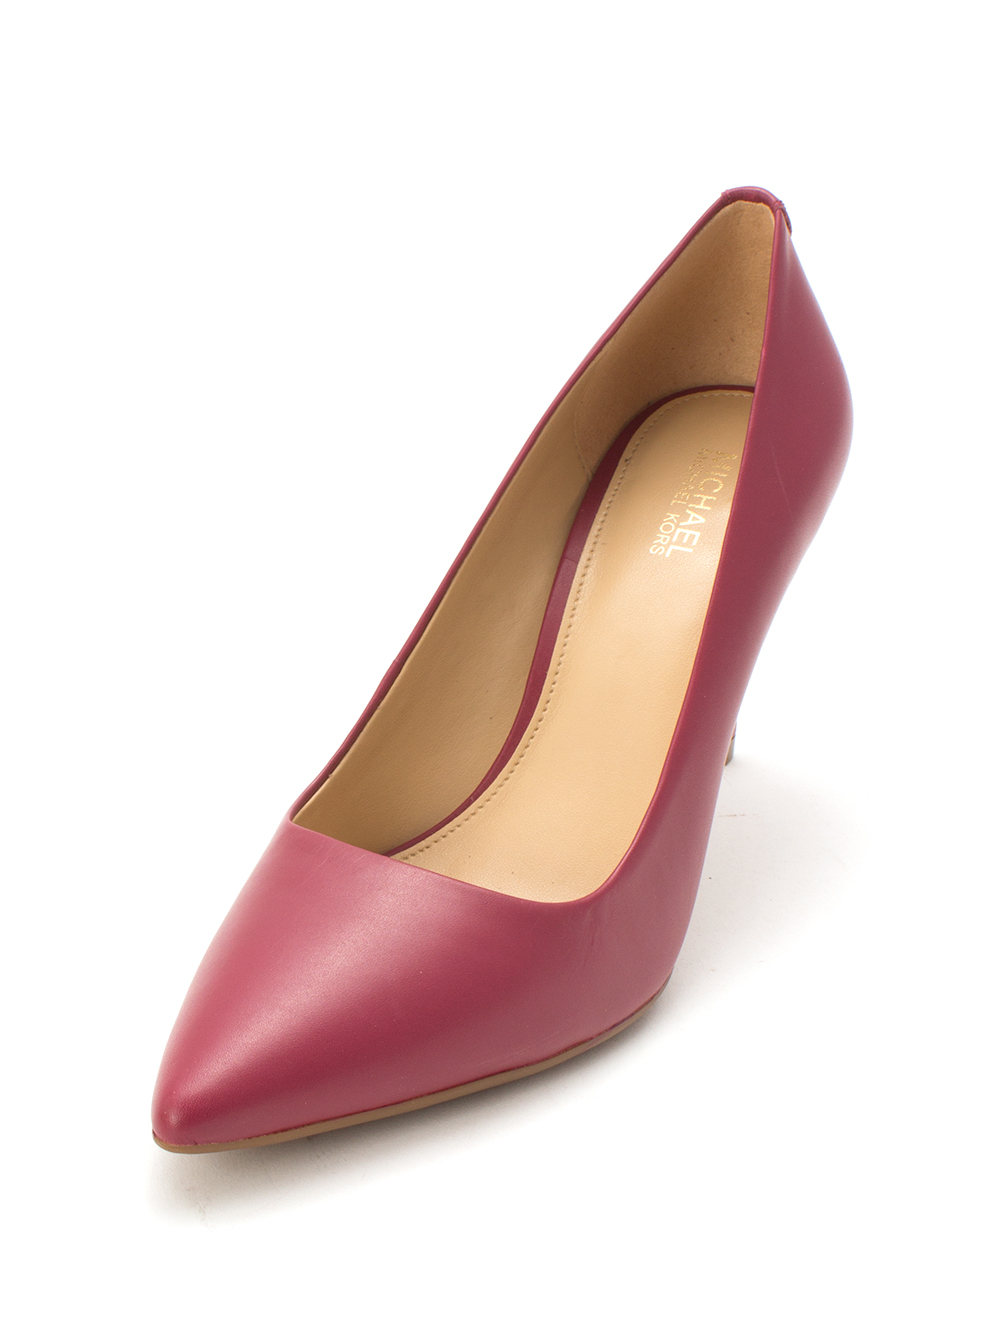 71c22ff5fce0 Michael Kors Womens Dorothy Leather Pointed Toe Classic Pumps